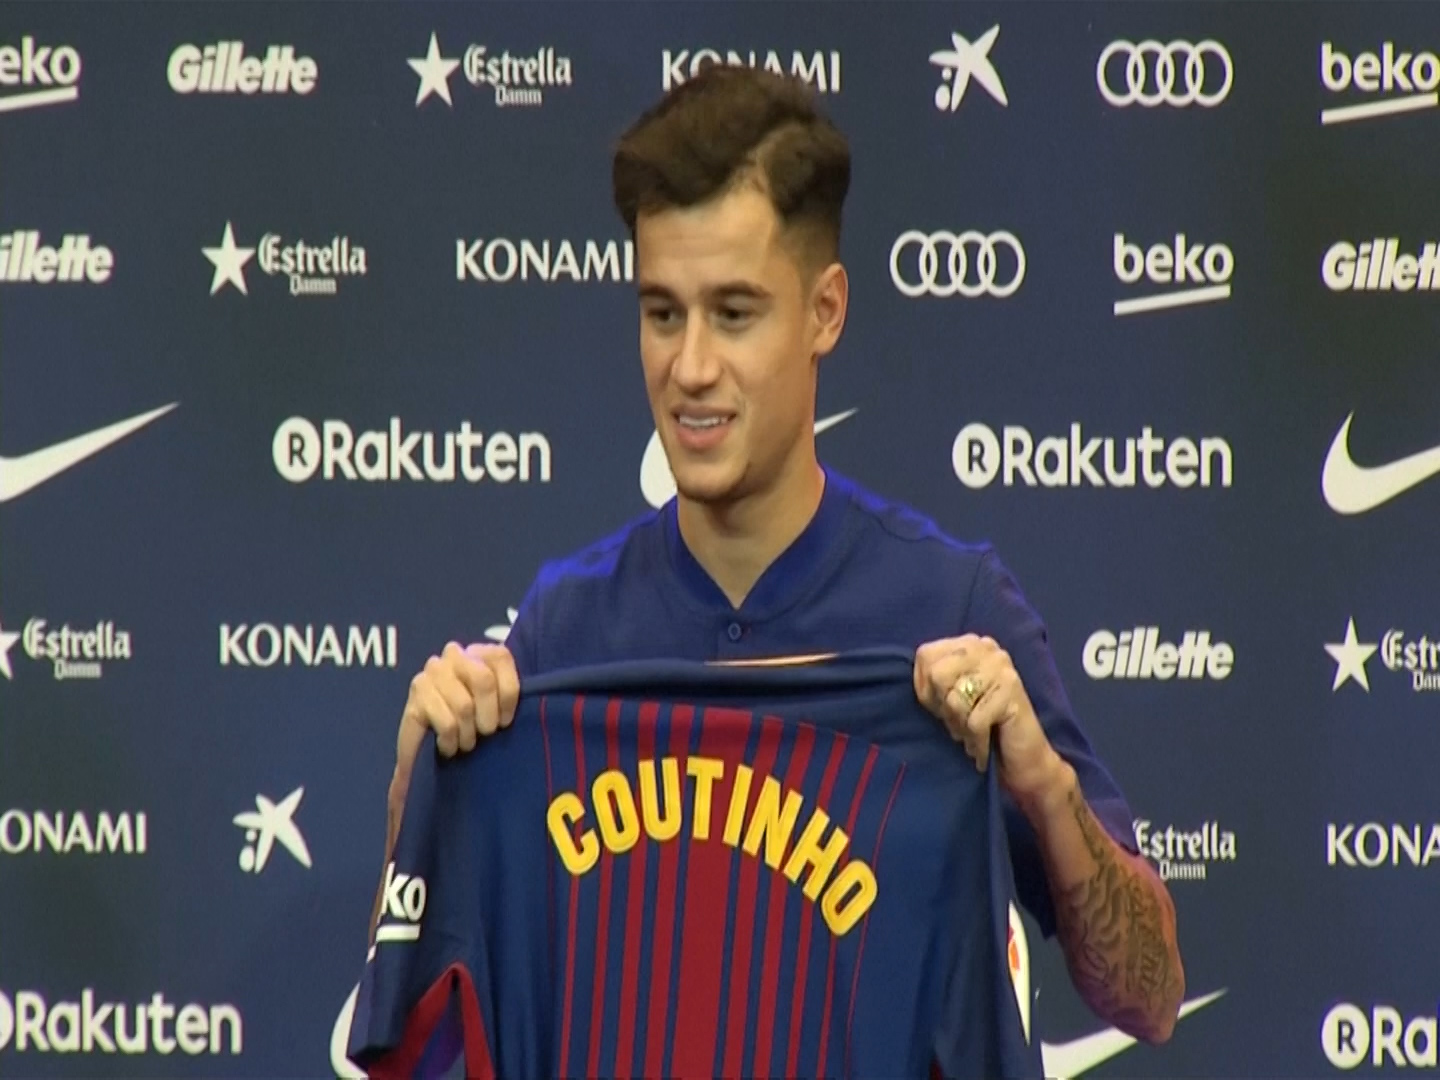 Coutinho says it was an 'easy decision' and his 'dream' to join Barcelona